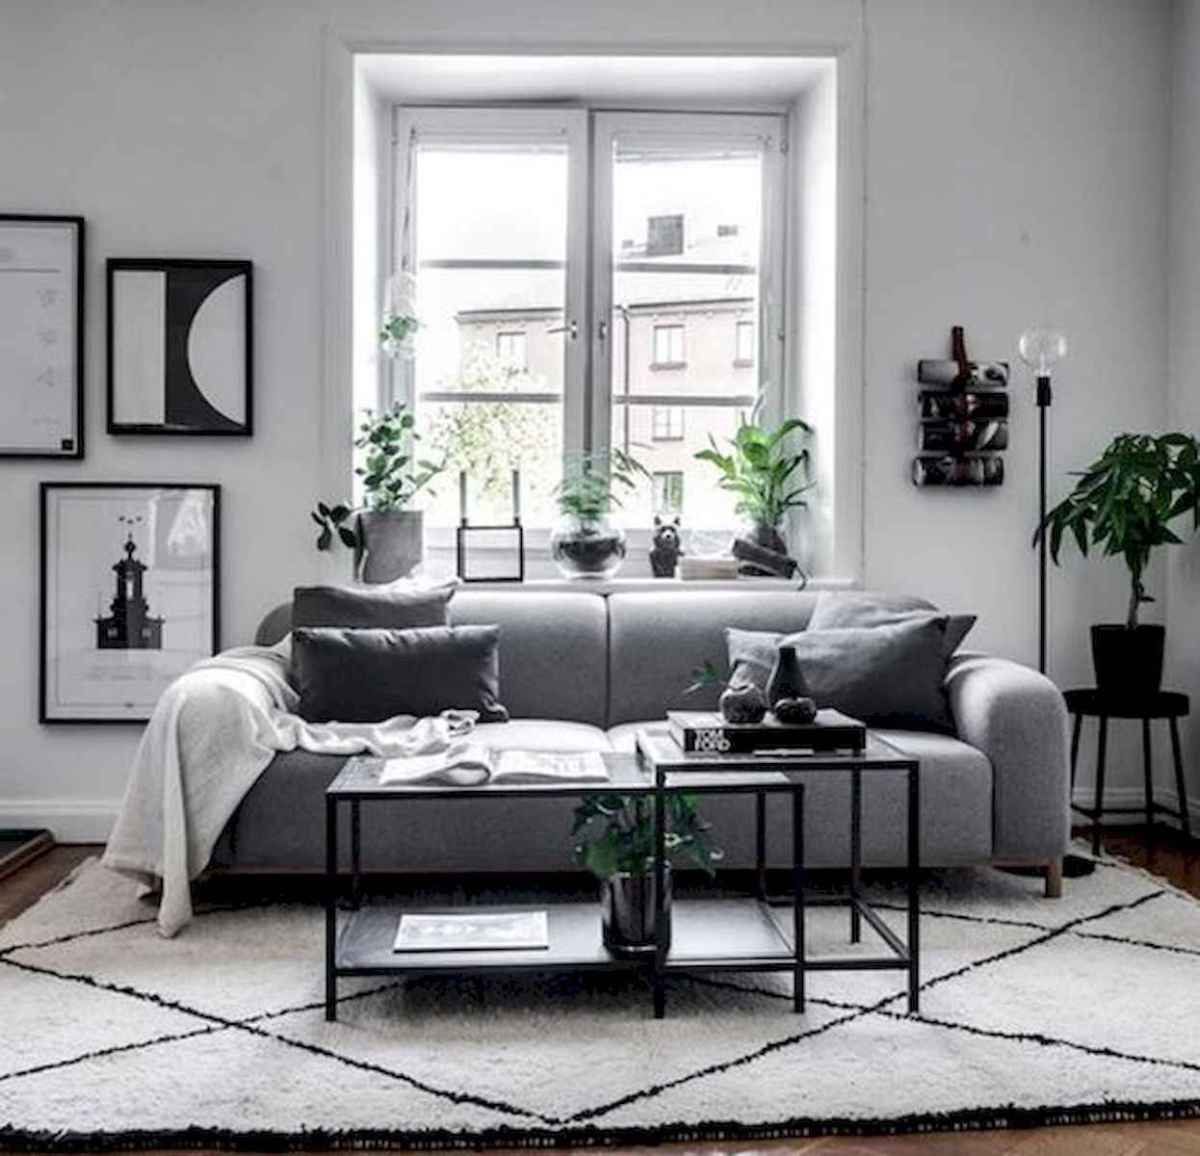 70 Stunning Grey White Black Living Room Decor Ideas And Remodel (3)